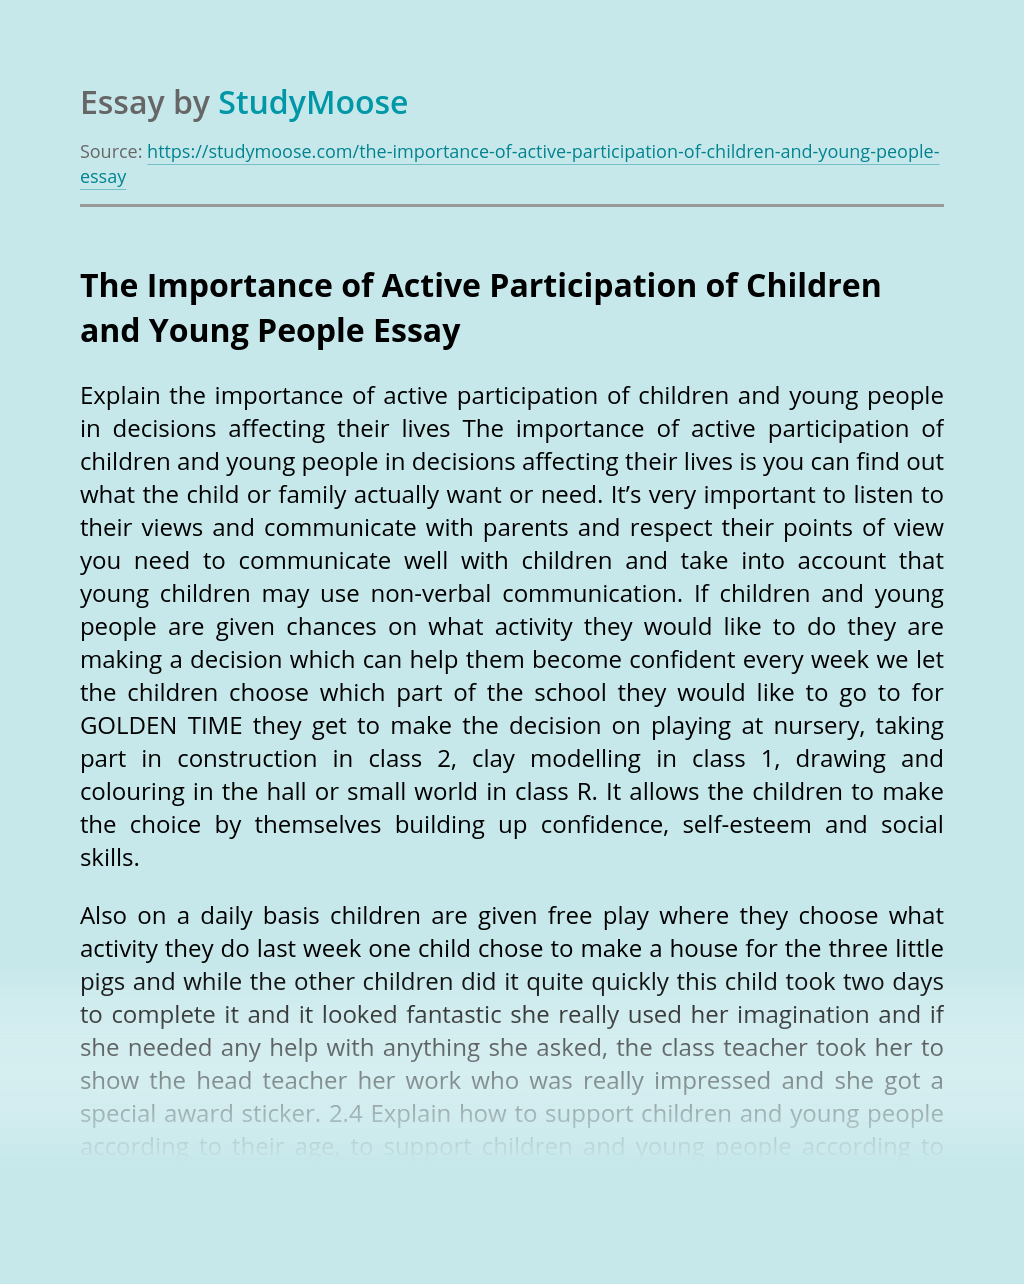 The Importance of Active Participation of Children and Young People